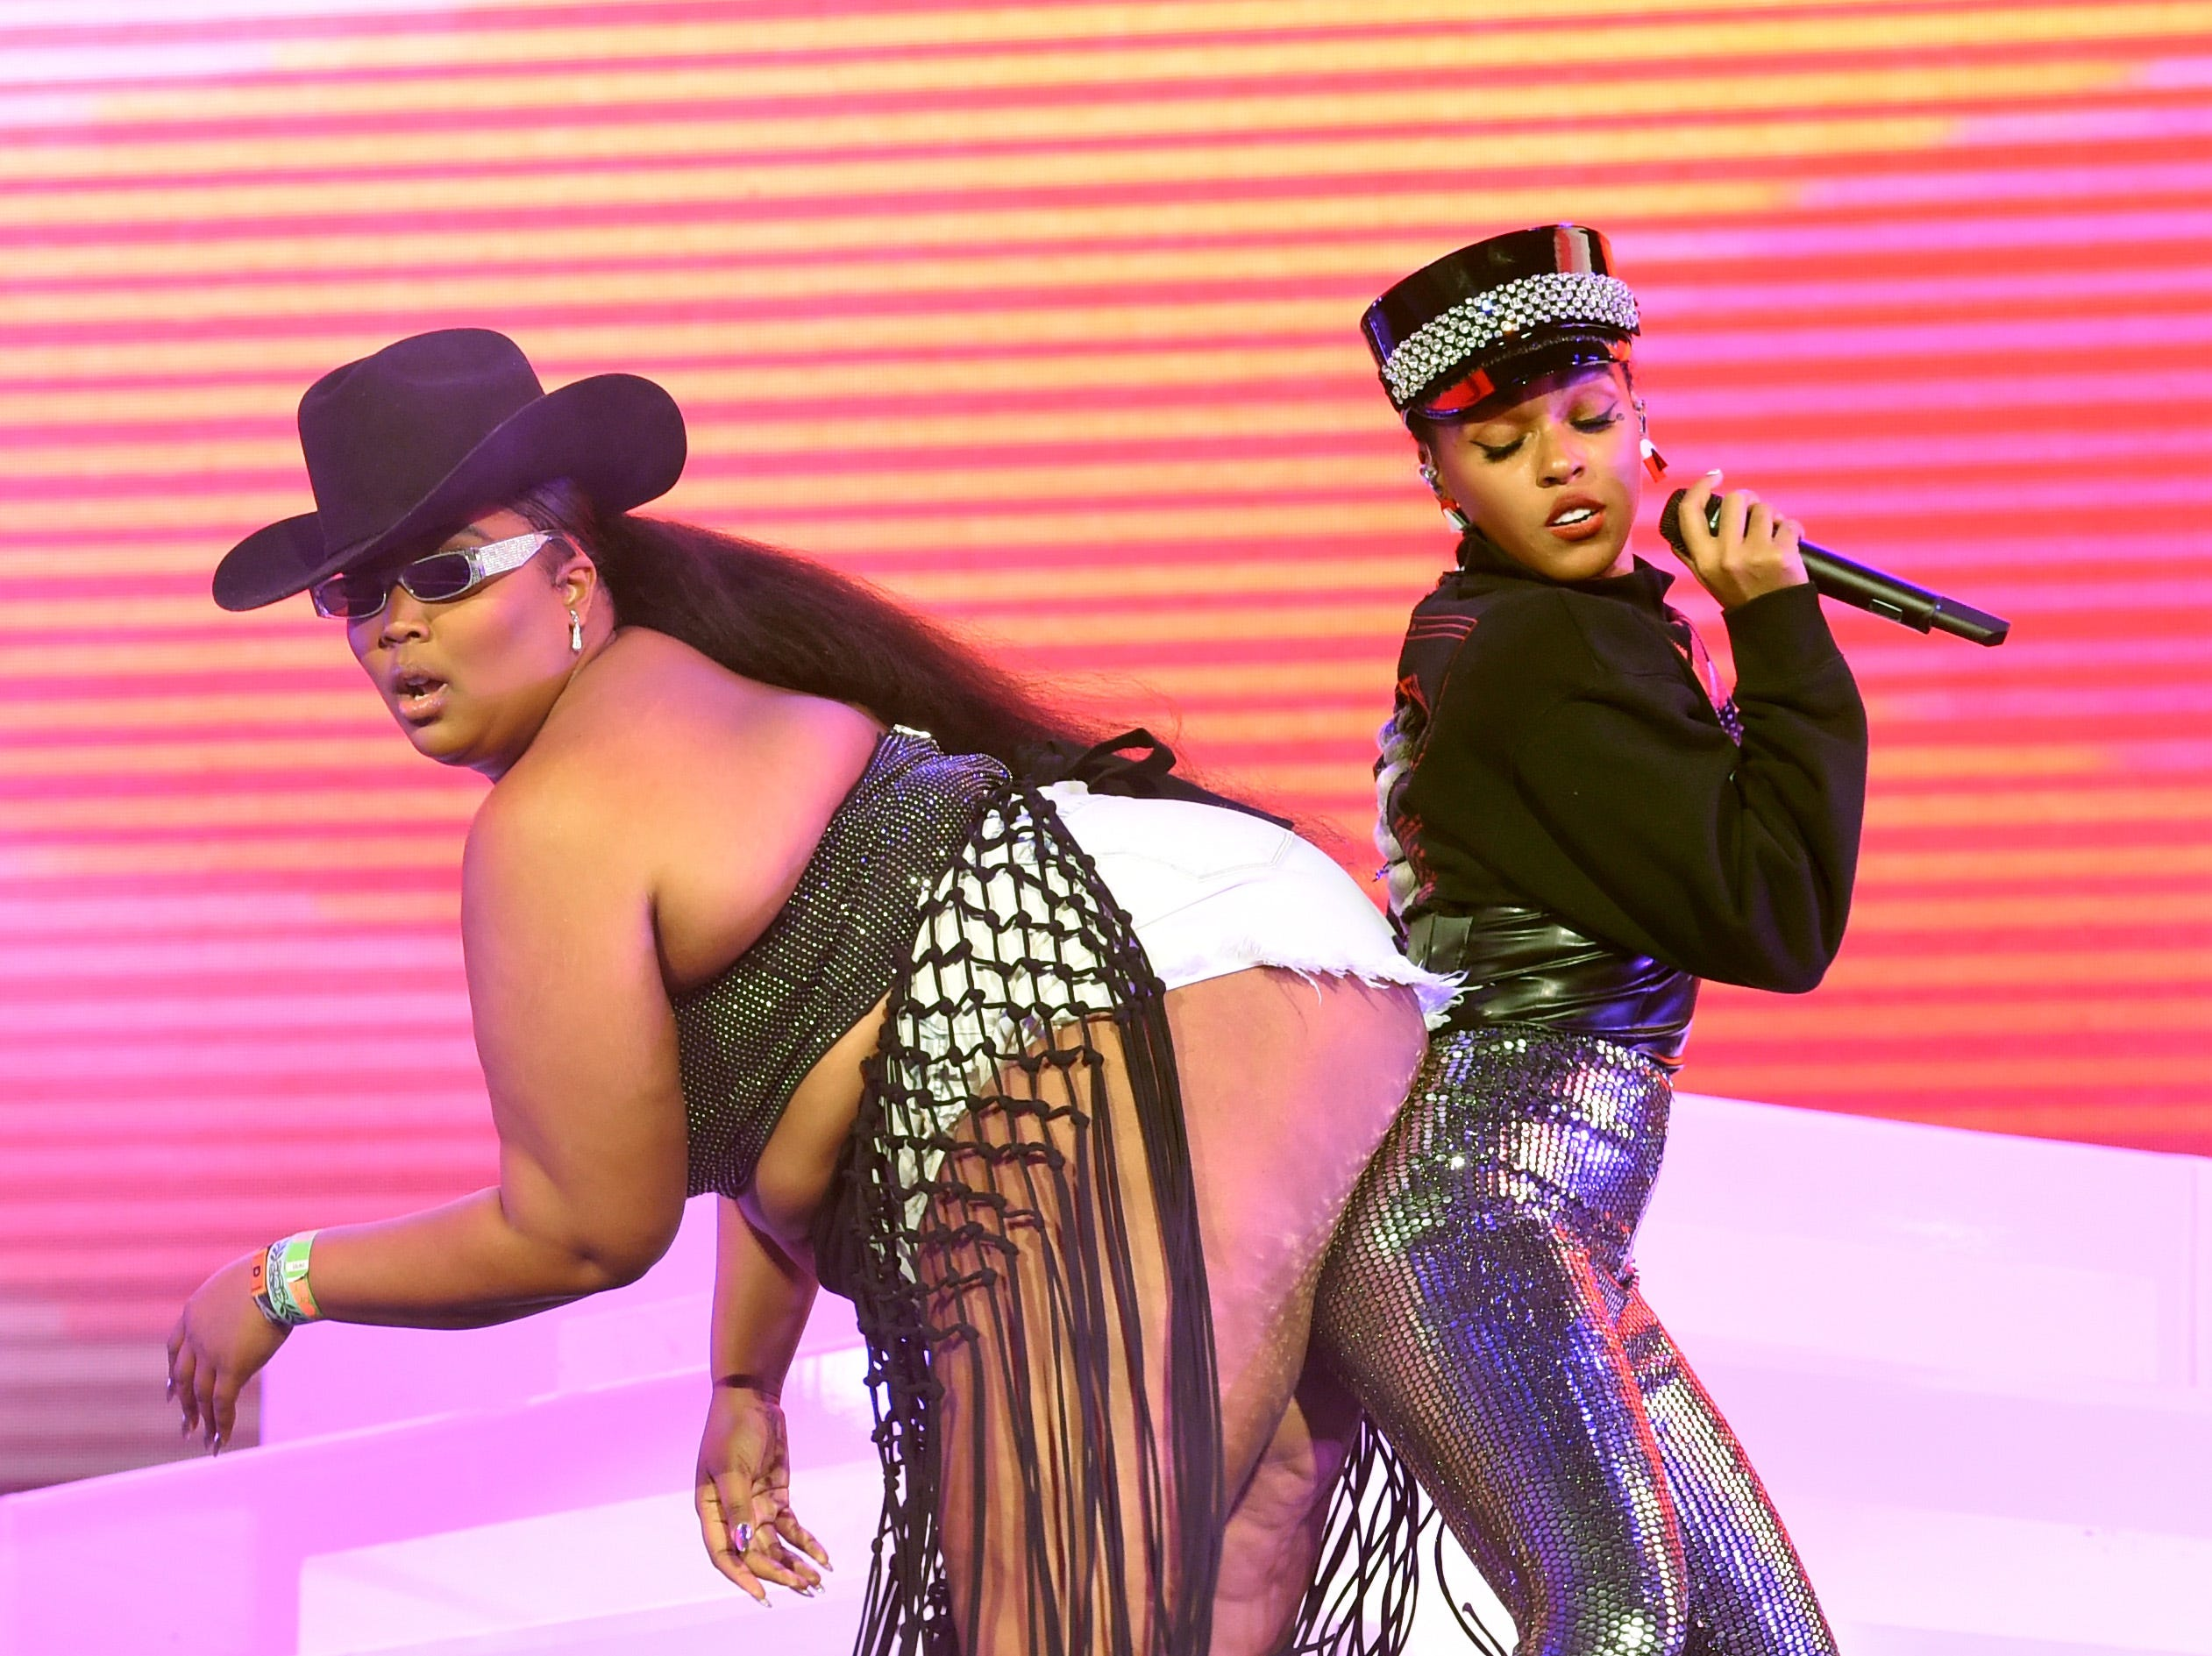 INDIO, CA - APRIL 12:  Lizzo and Janelle Monáe perform on Coachella Stage during the 2019 Coachella Valley Music And Arts Festival on April 12, 2019 in Indio, California.  (Photo by Kevin Winter/Getty Images for Coachella) ORG XMIT: 775319302 ORIG FILE ID: 1136618206